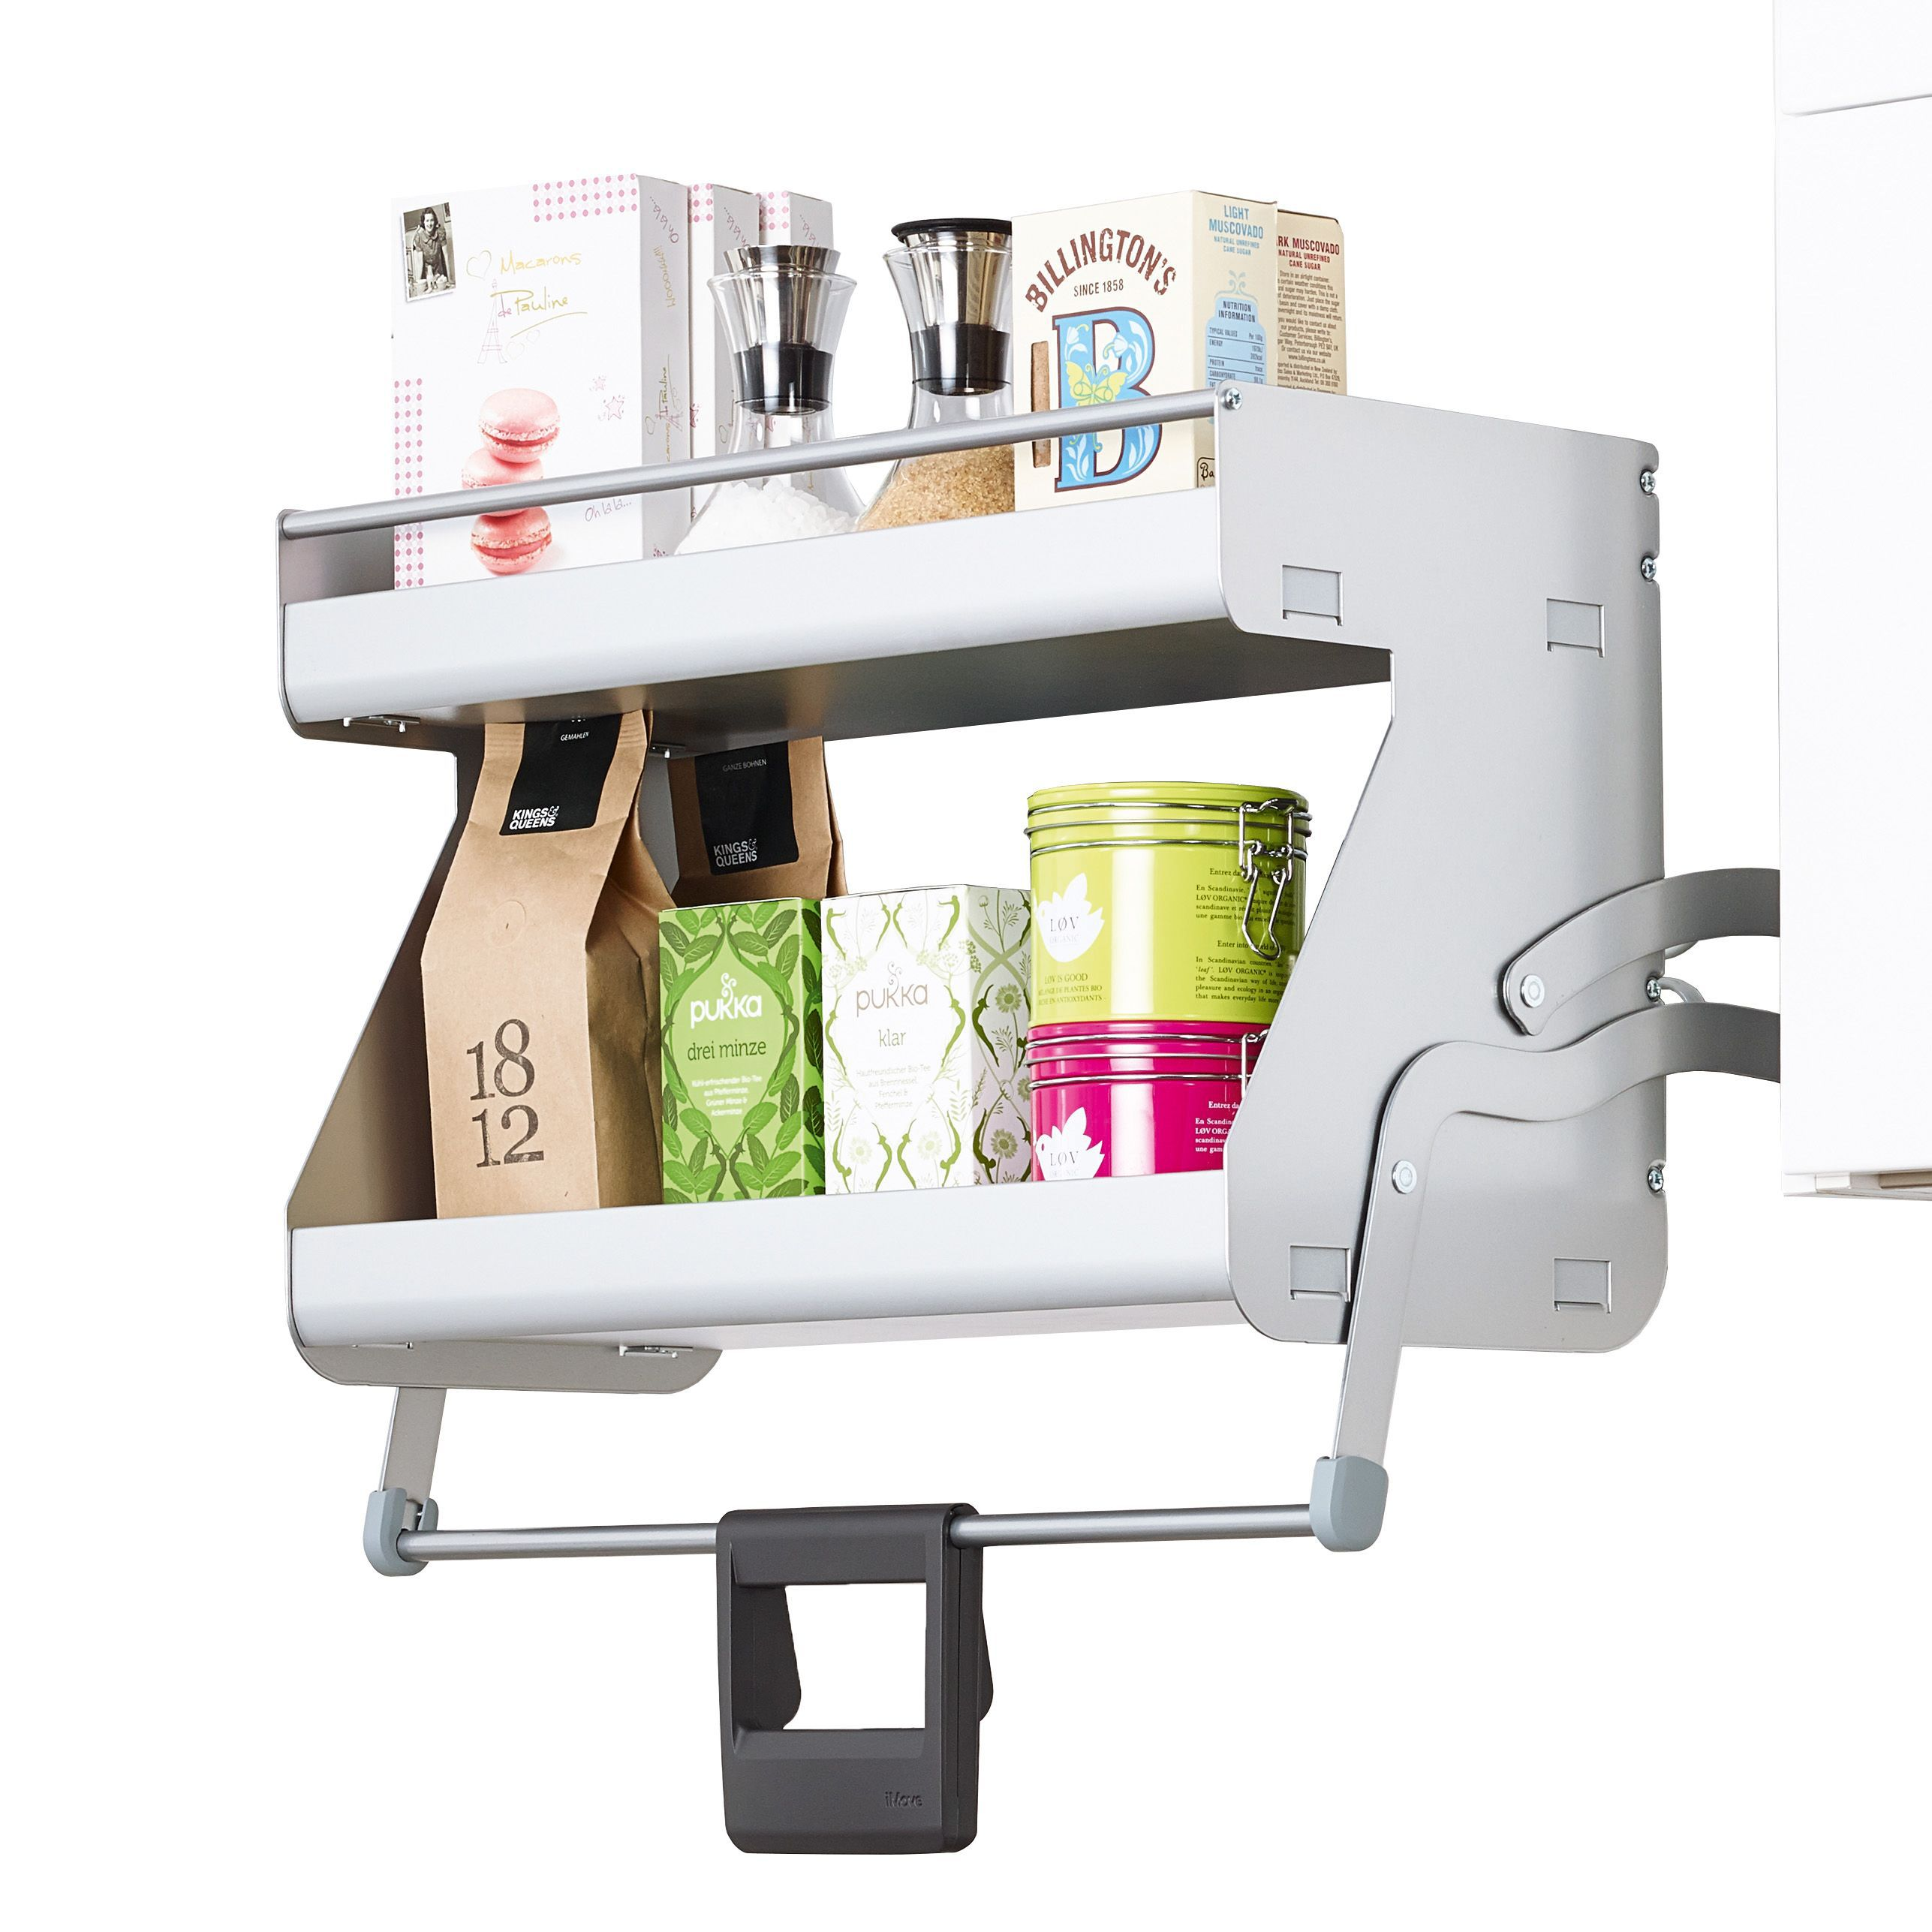 Kitchen Cabinet Pull Down Shelves: Kesseböhmer Imove Two Tier Internal Pull Down Shelf, 600mm